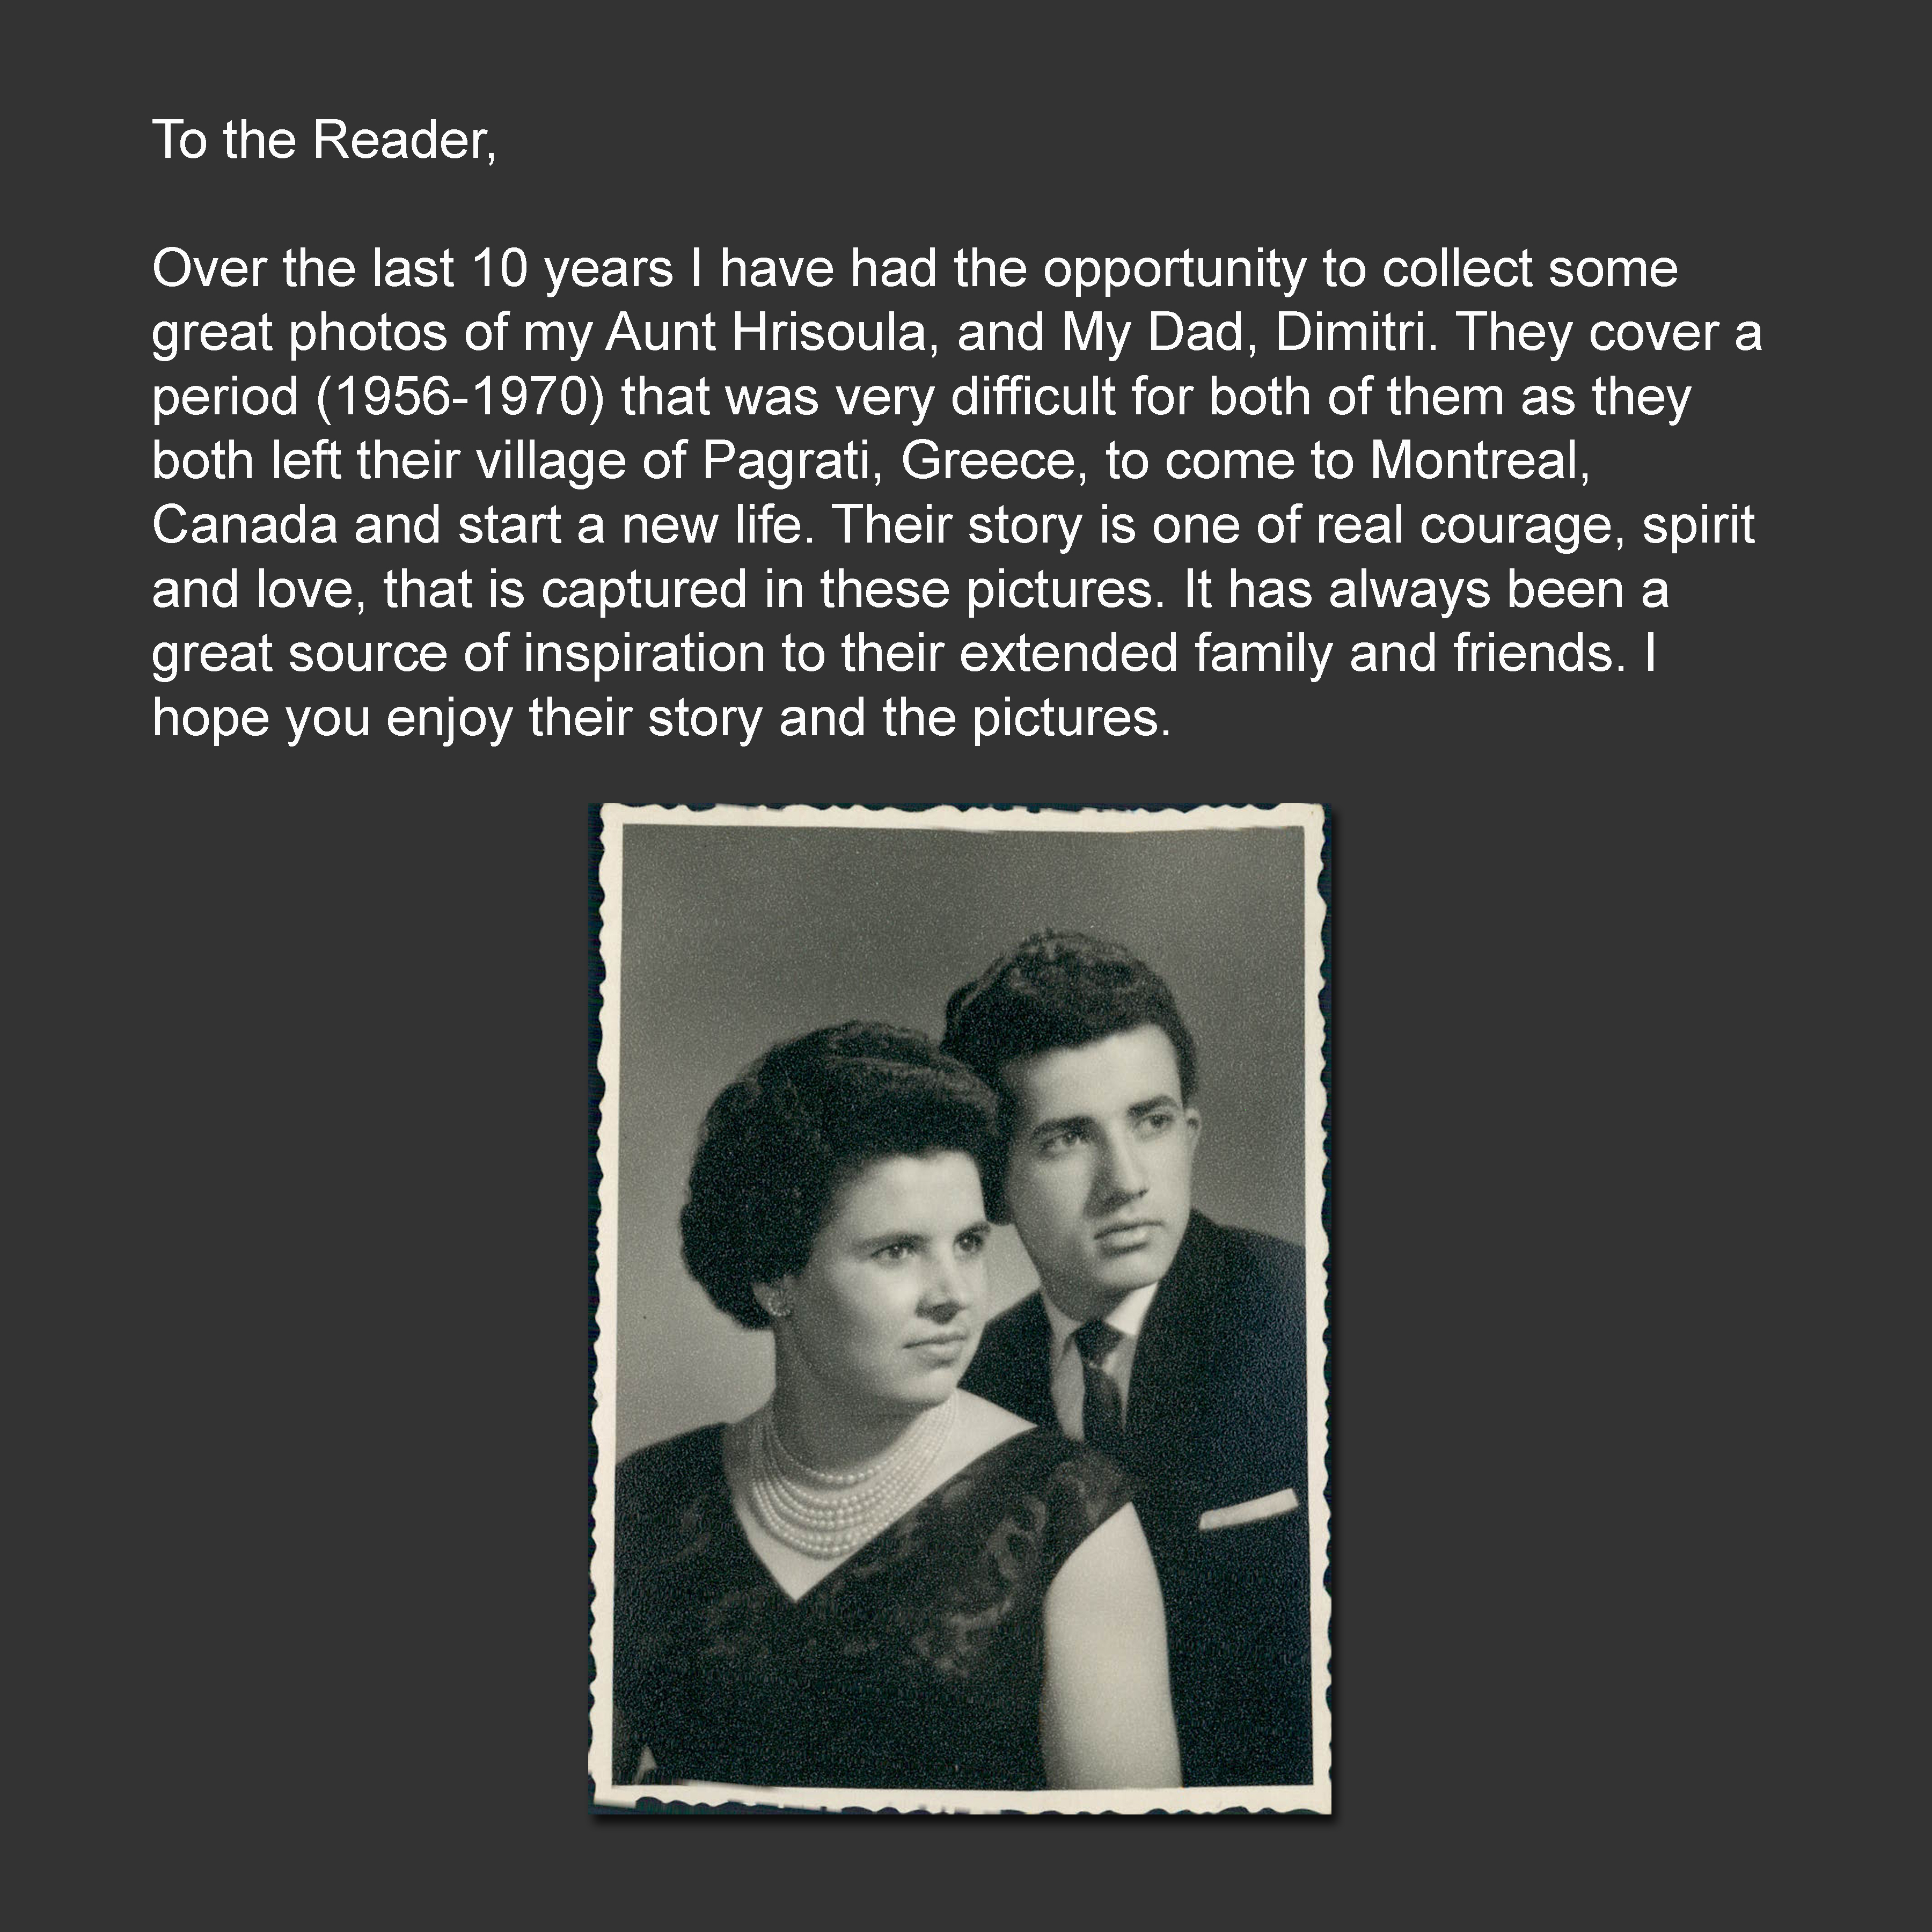 family history photos make a great legacy book